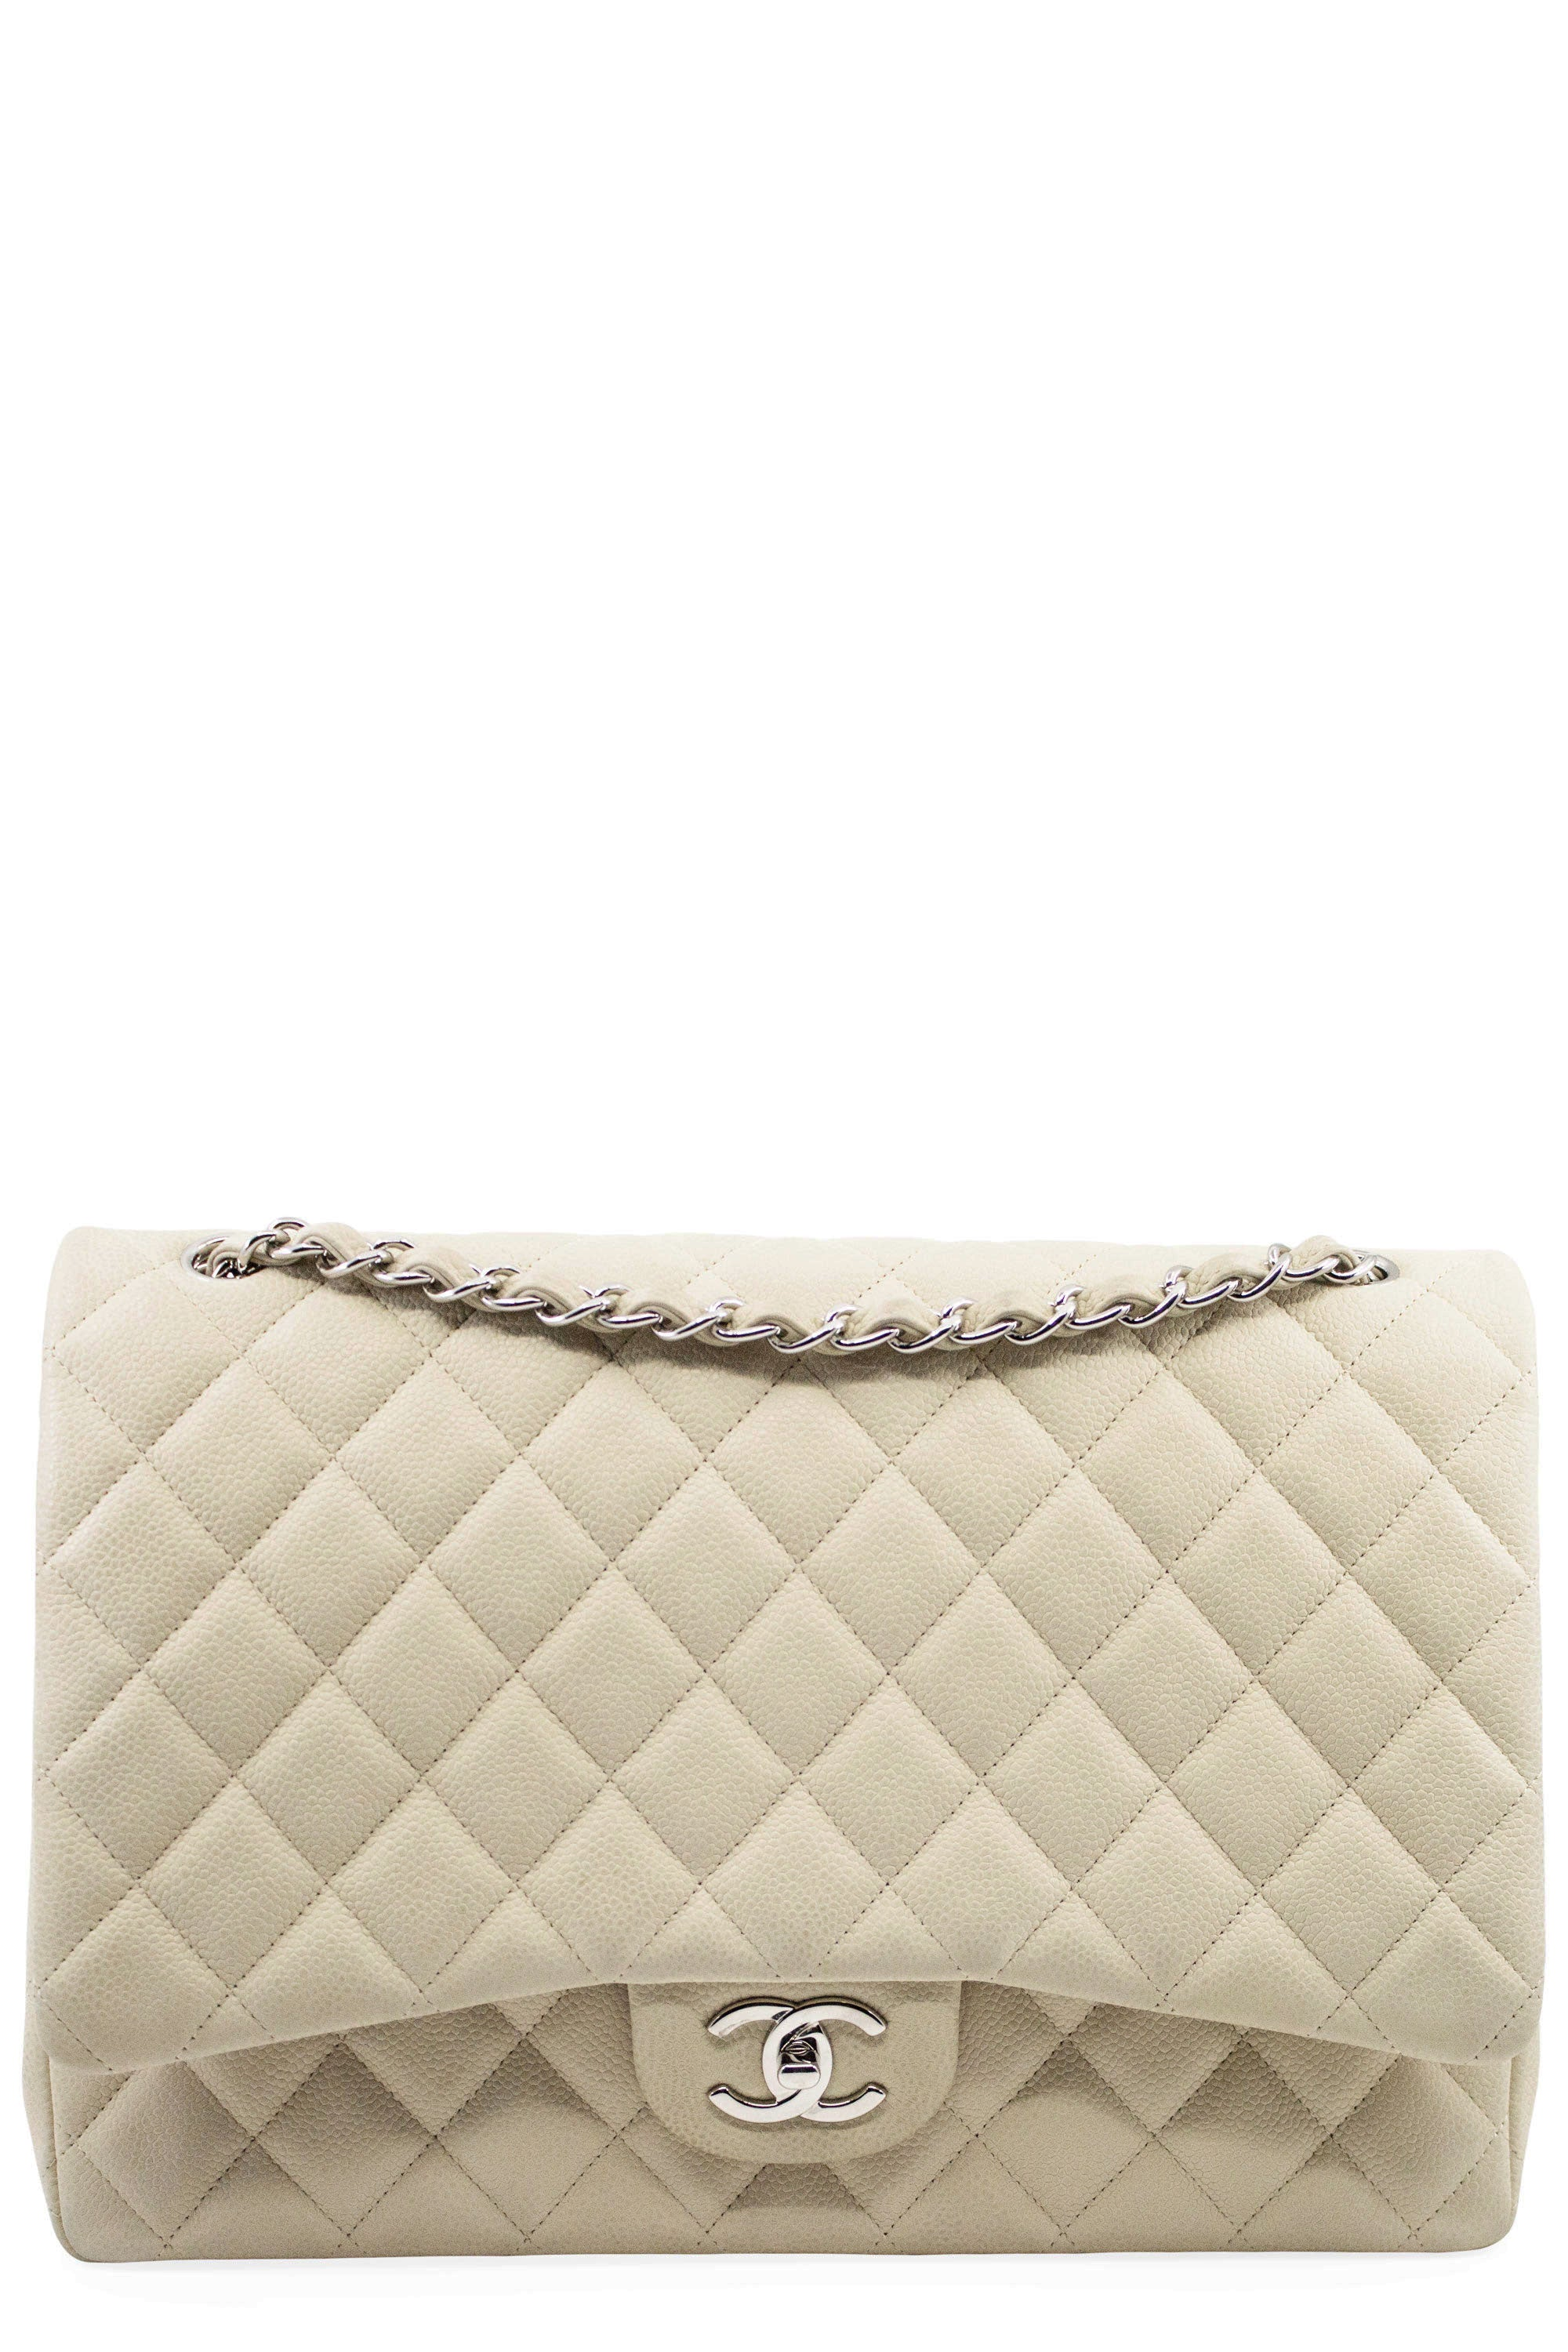 CHANEL Maxi Jumbo Beige Caviar & Silver Frontansicht